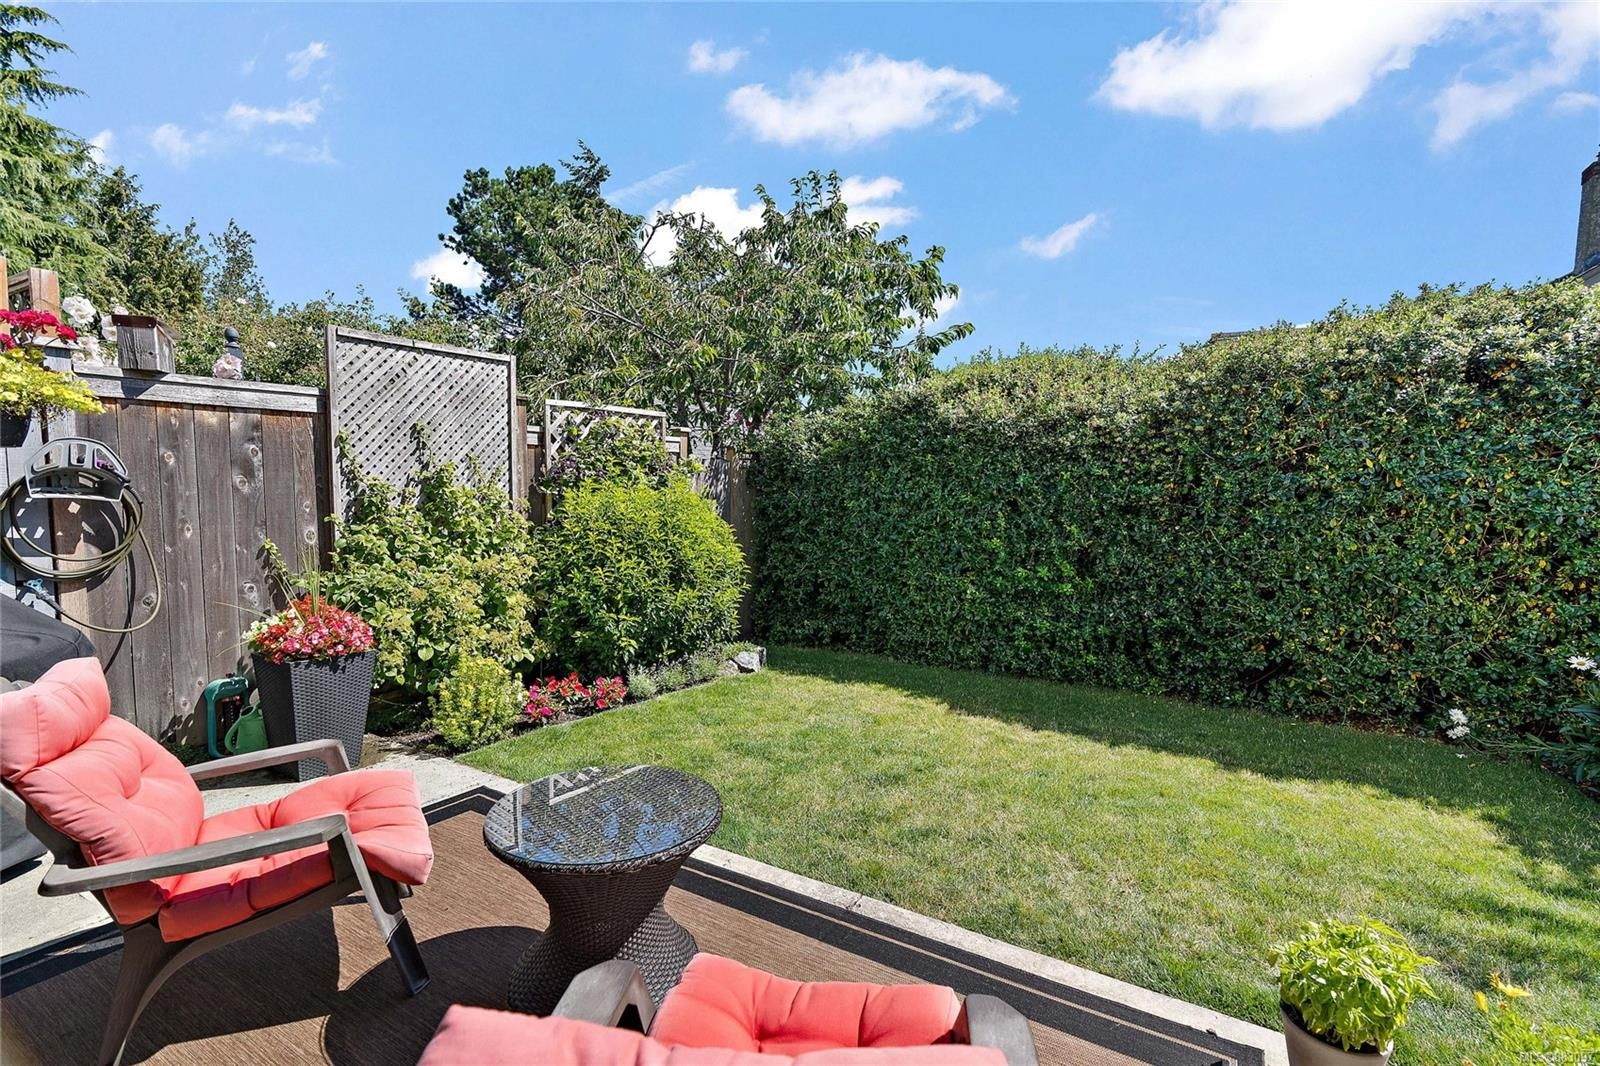 Main Photo: 3 331 Robert St in : VW Victoria West Row/Townhouse for sale (Victoria West)  : MLS®# 883097